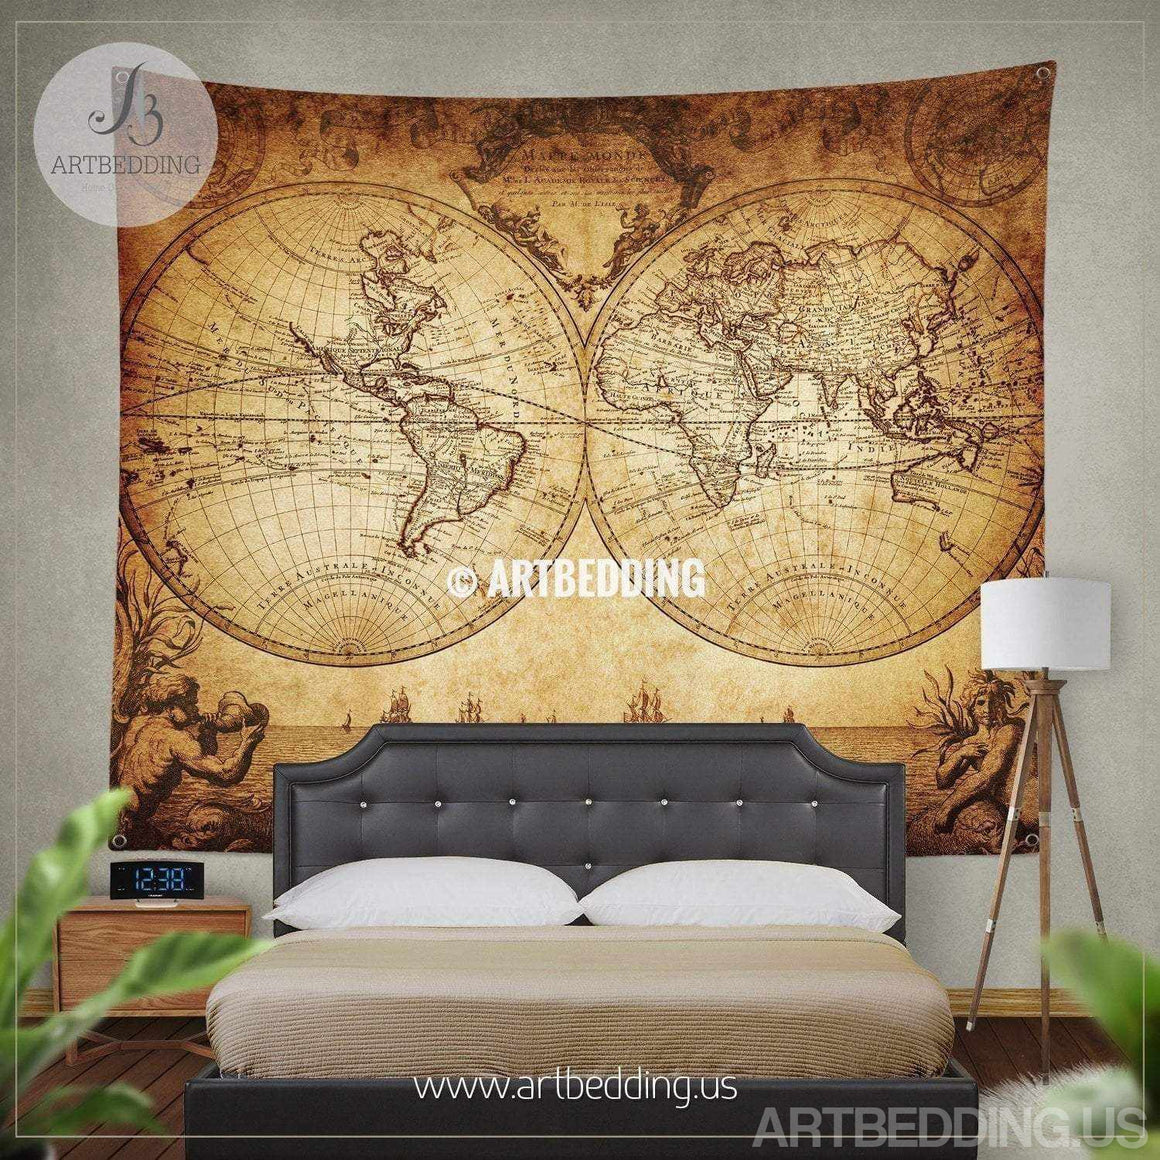 Vintage world map wall tapestry, Historical world map wall hanging, old map wall decor, vintage map wall art print Tapestry